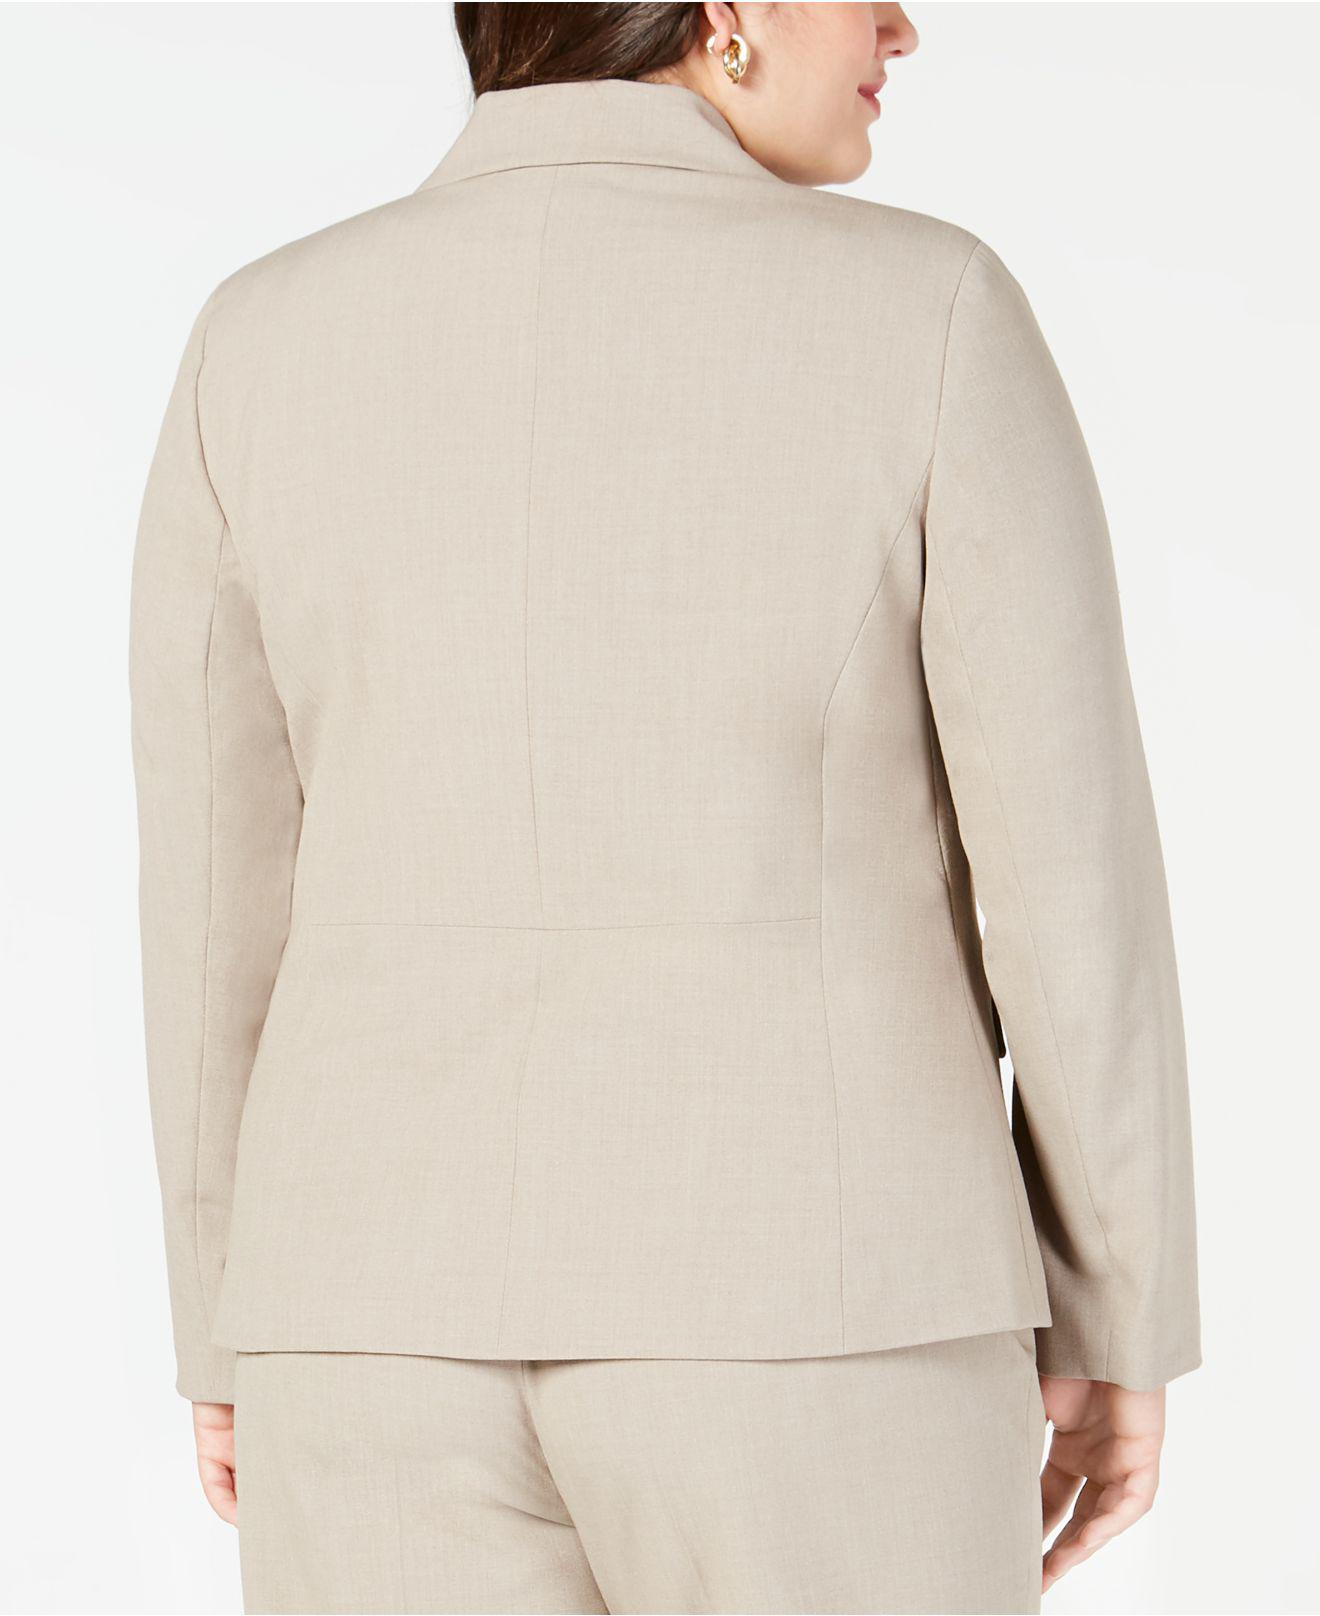 a354c79bb037 Lyst - Nine West Plus Size Crepe Two-button Jacket in Natural